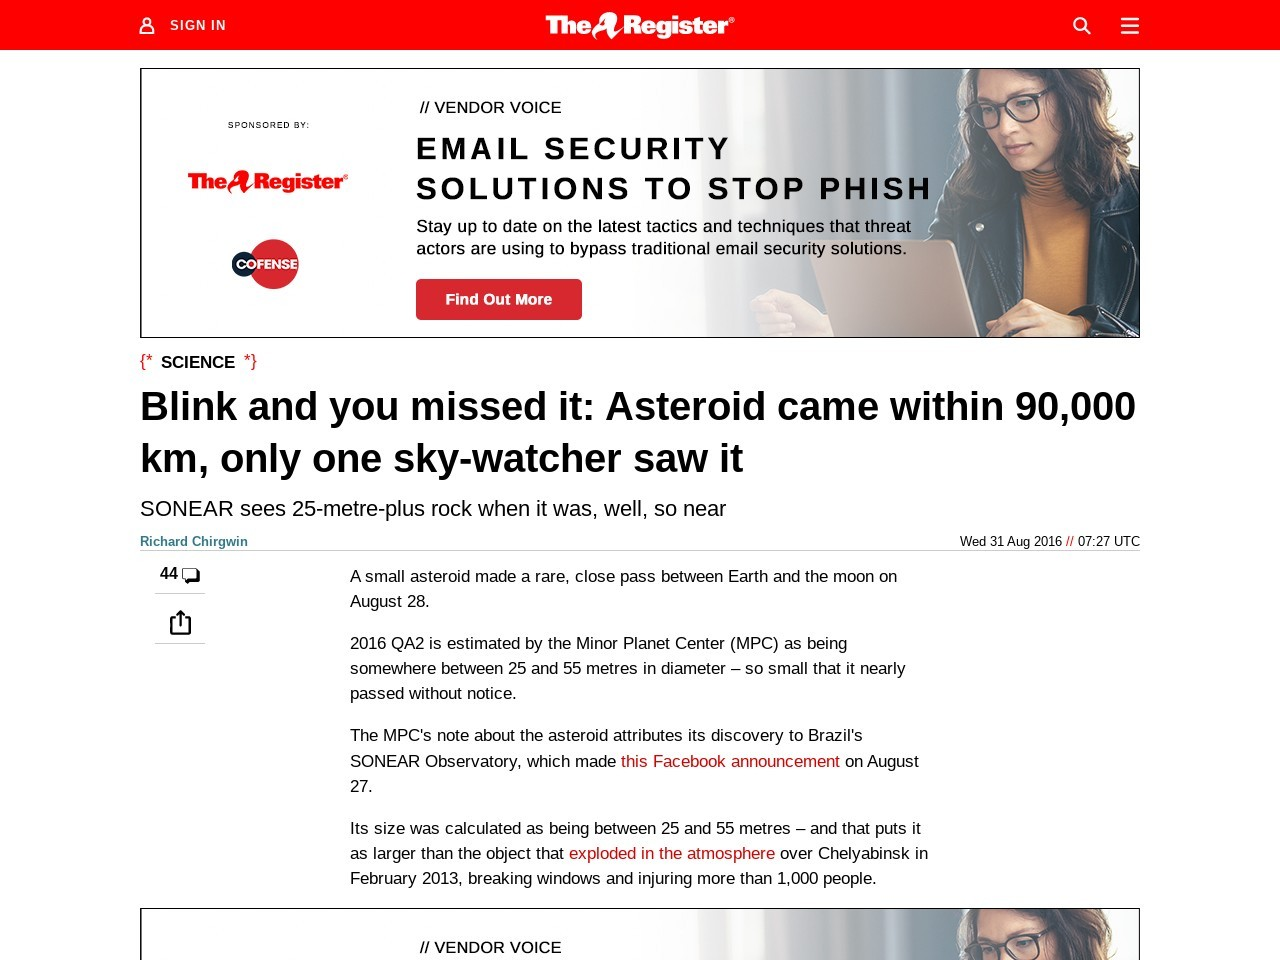 Blink and you missed it: Asteroid came within 90,000 km, only one sky-watcher saw it